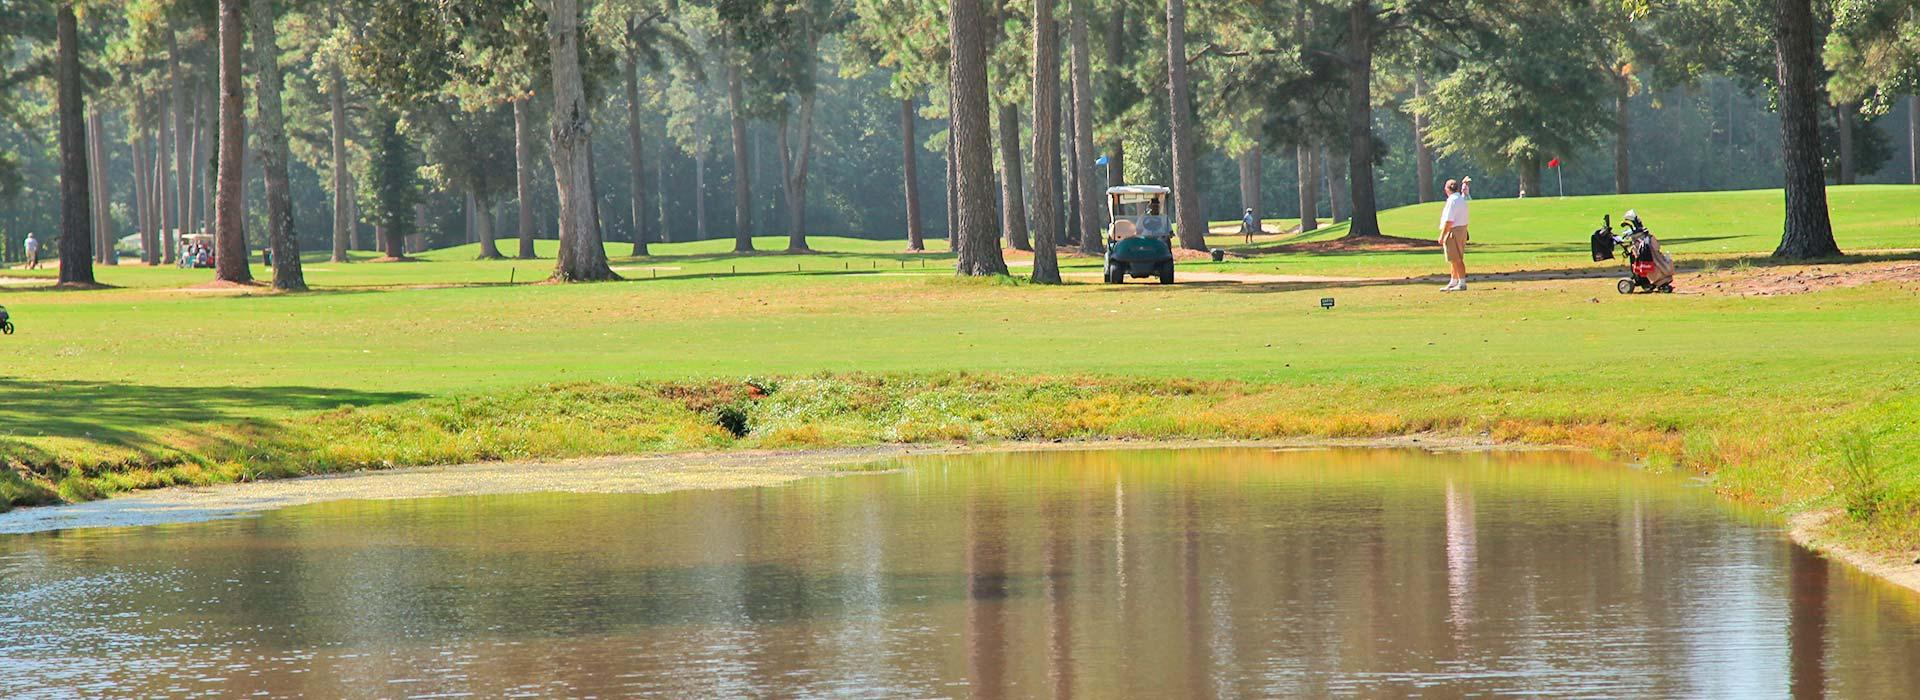 Golf cart and golfer in the background at YMCA of the Pines golf course in Elizabeth City, NC